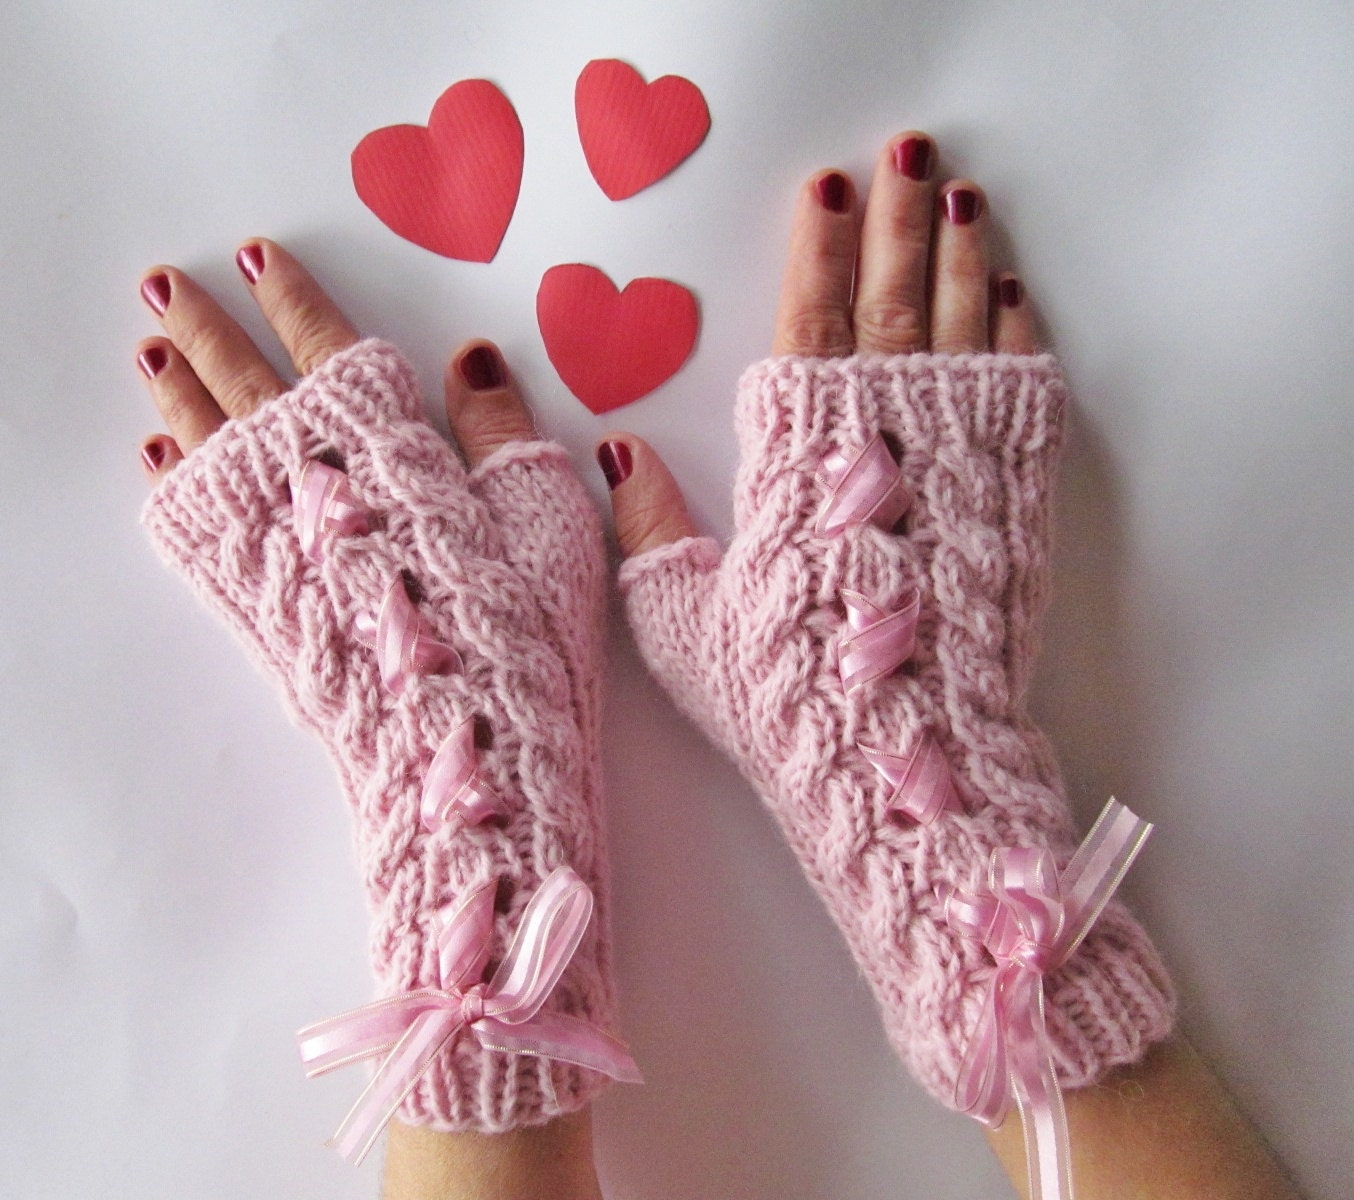 Pale Pink Hand Knitted Arm Warmers Fingerless Gloves, Wool Mittens with Satin Ribbon